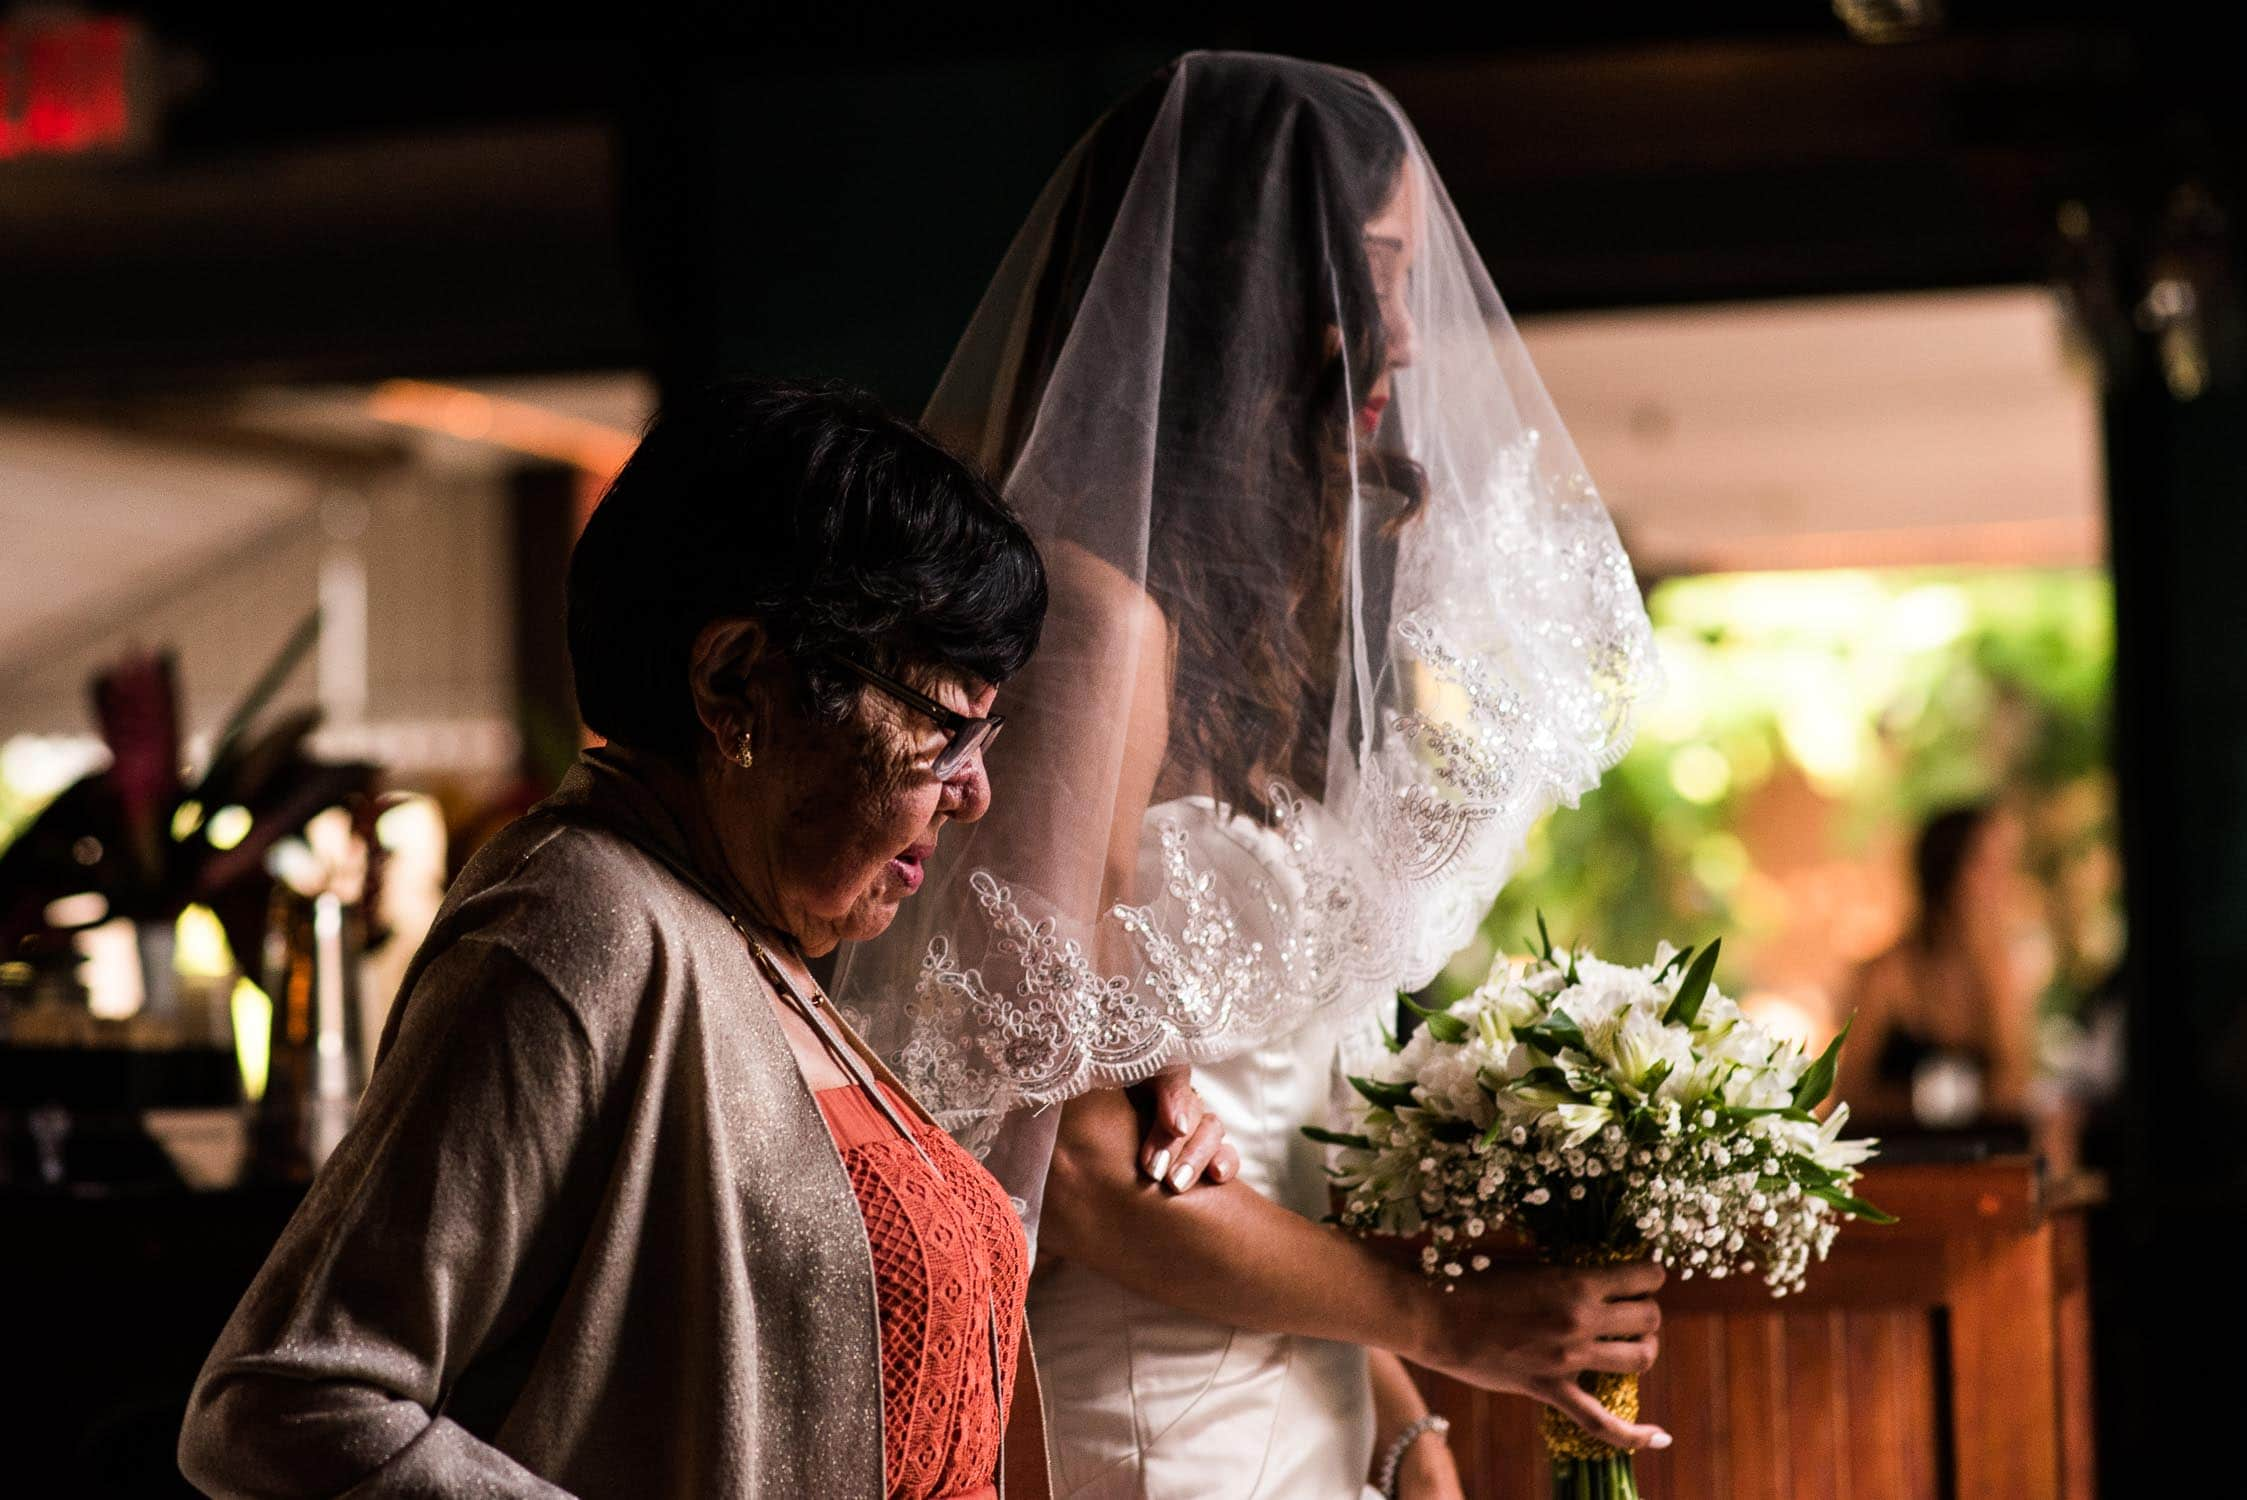 Family photography from wedding day